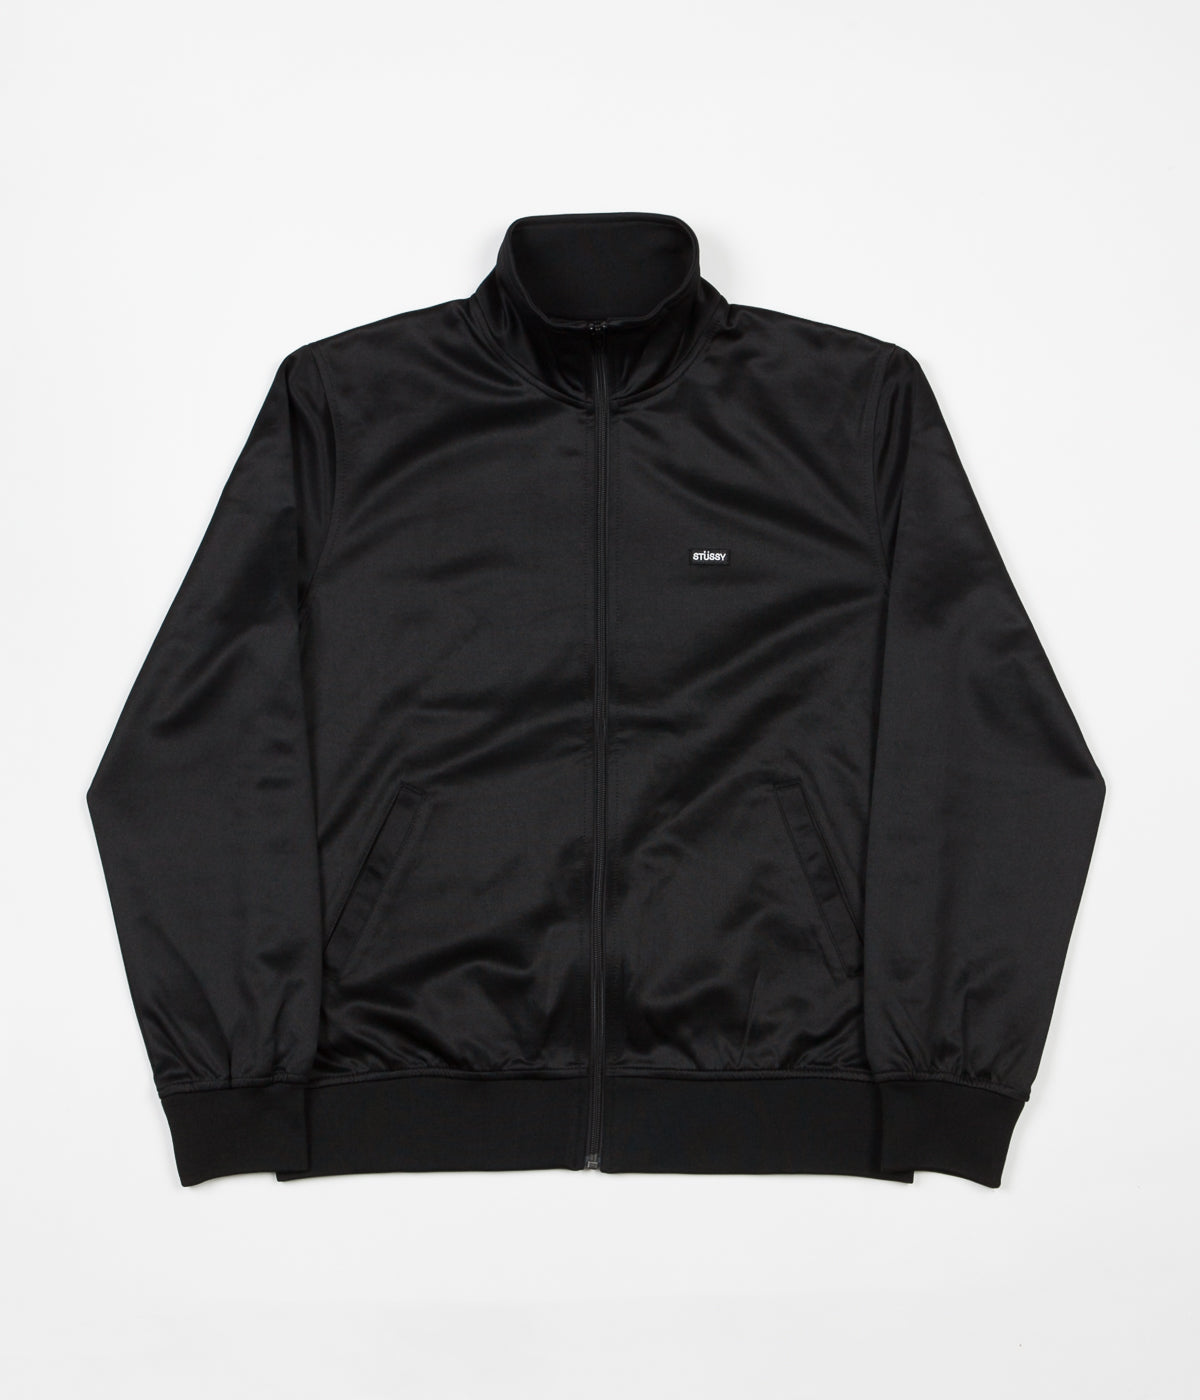 Stussy Textured Rib Tracksuit Jacket - Black